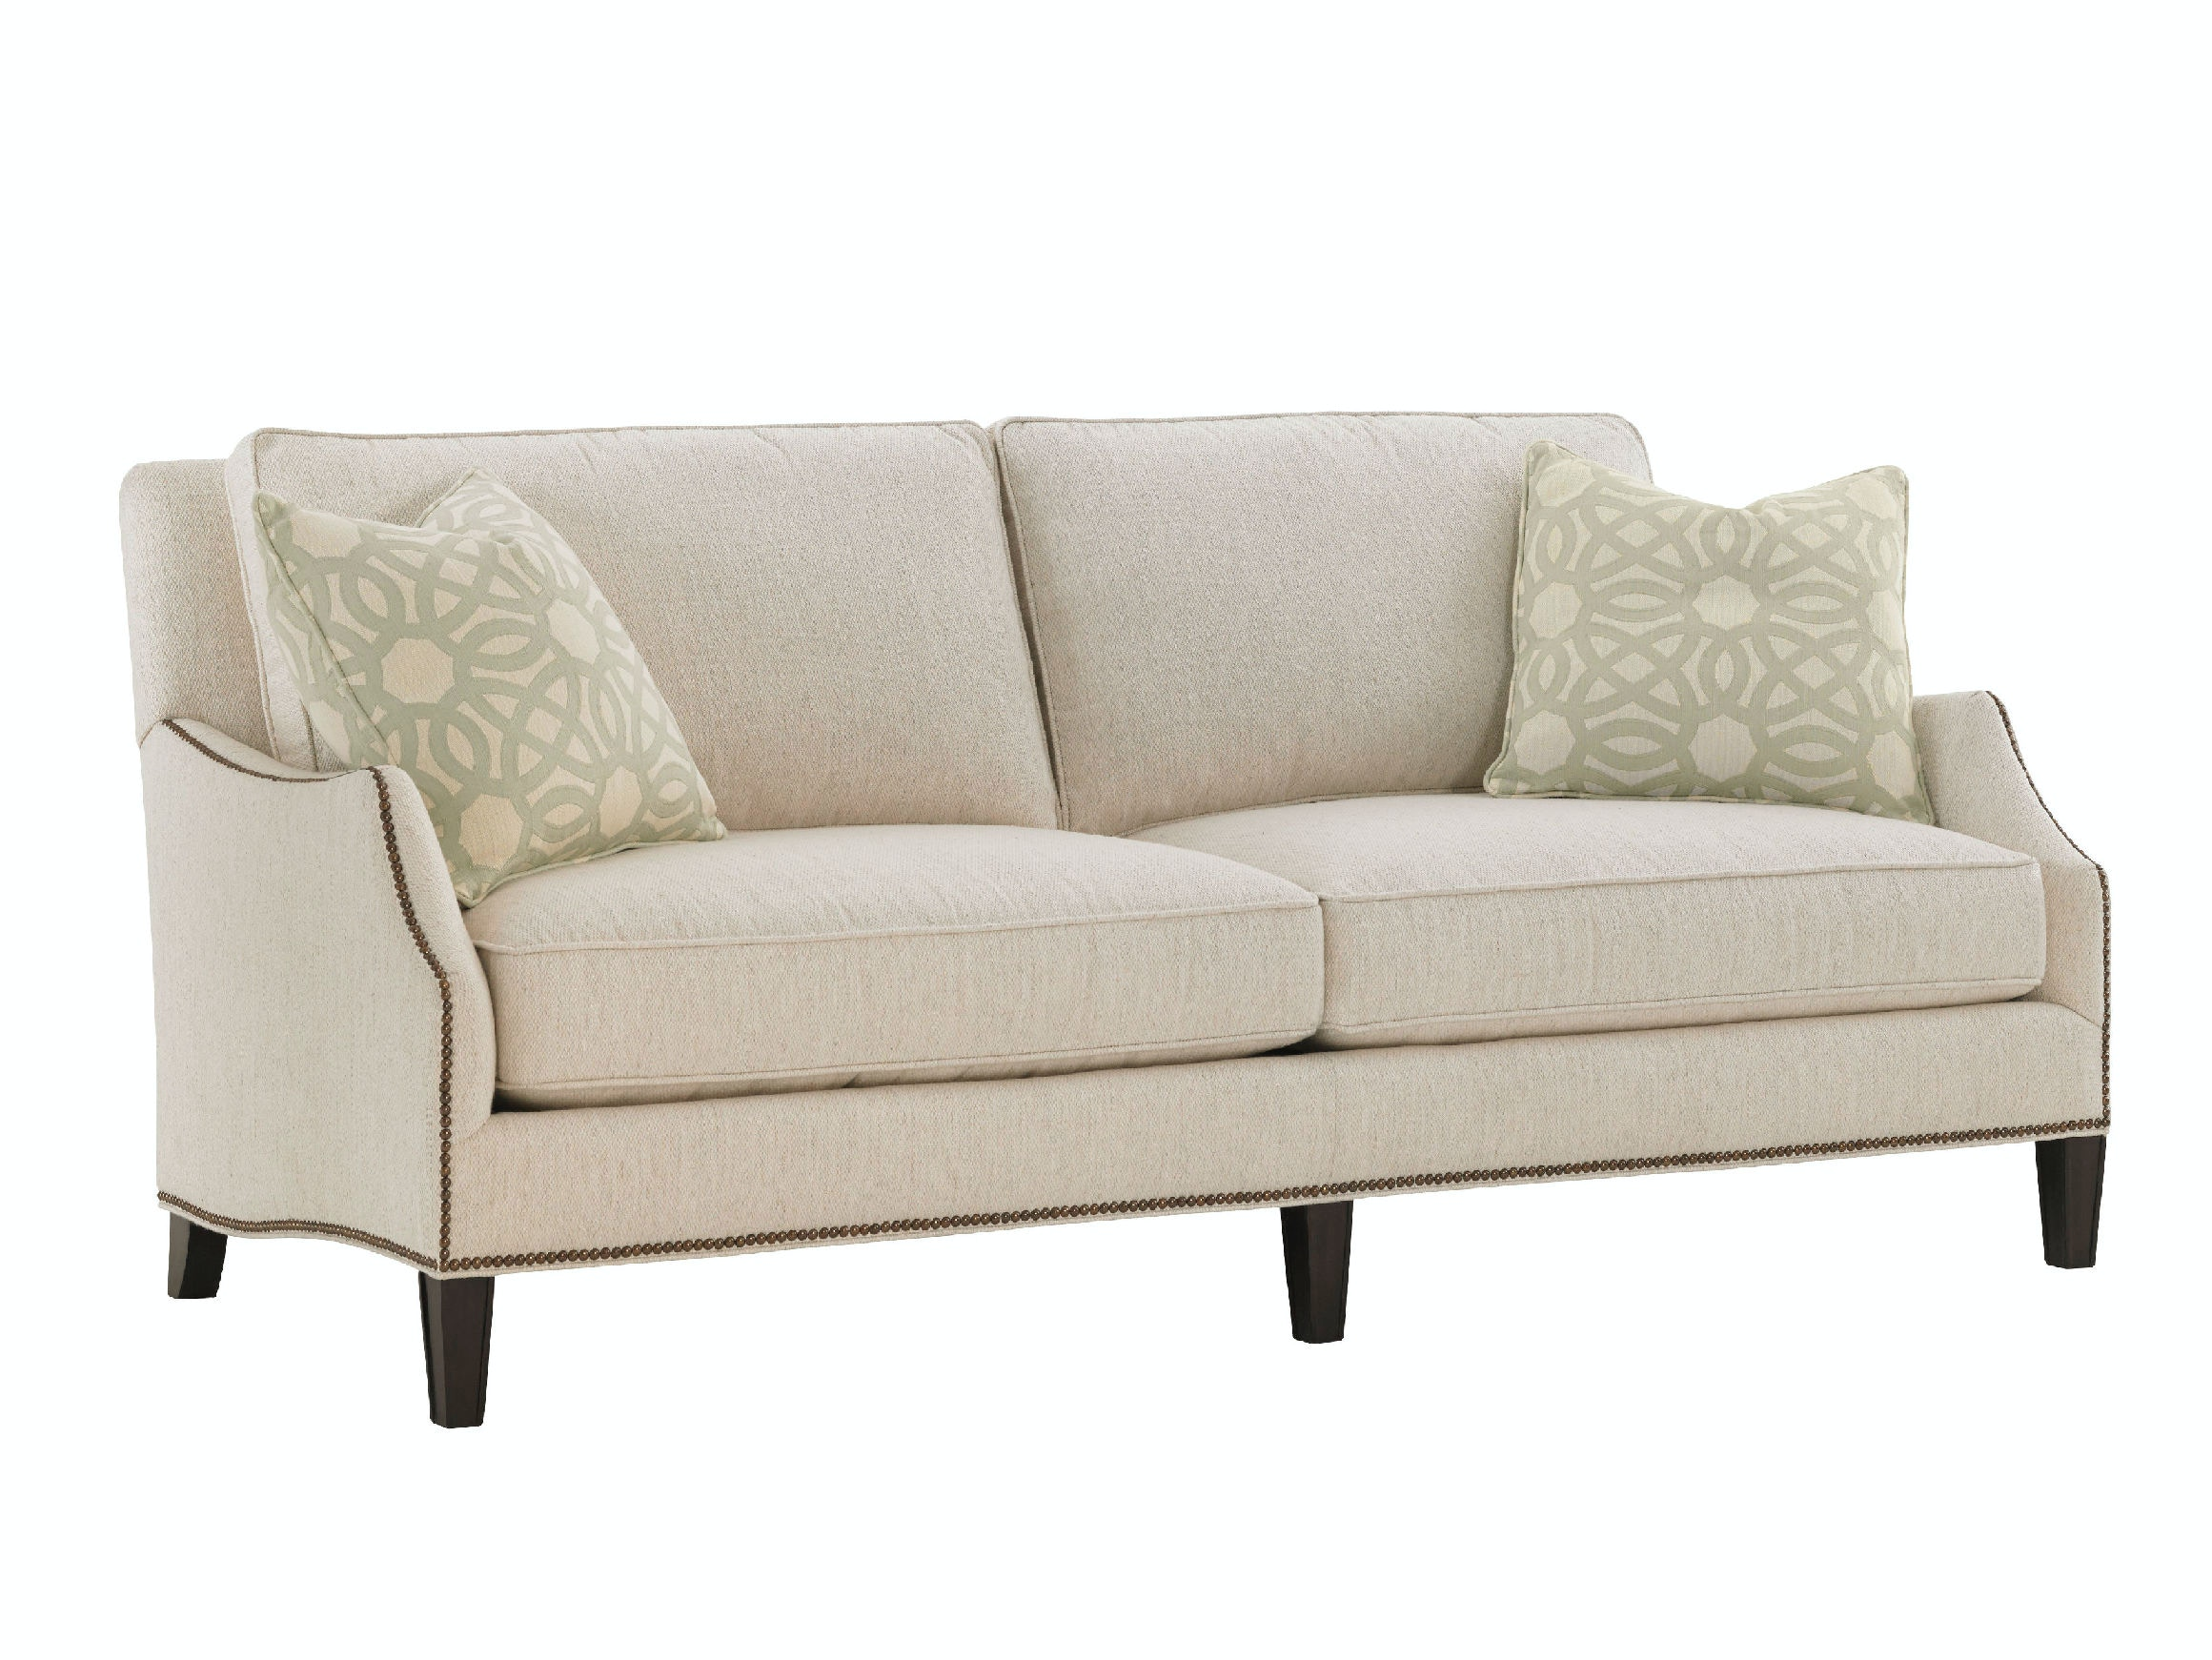 ashton sofa oz design how to clean polyester cushions demi lx711831